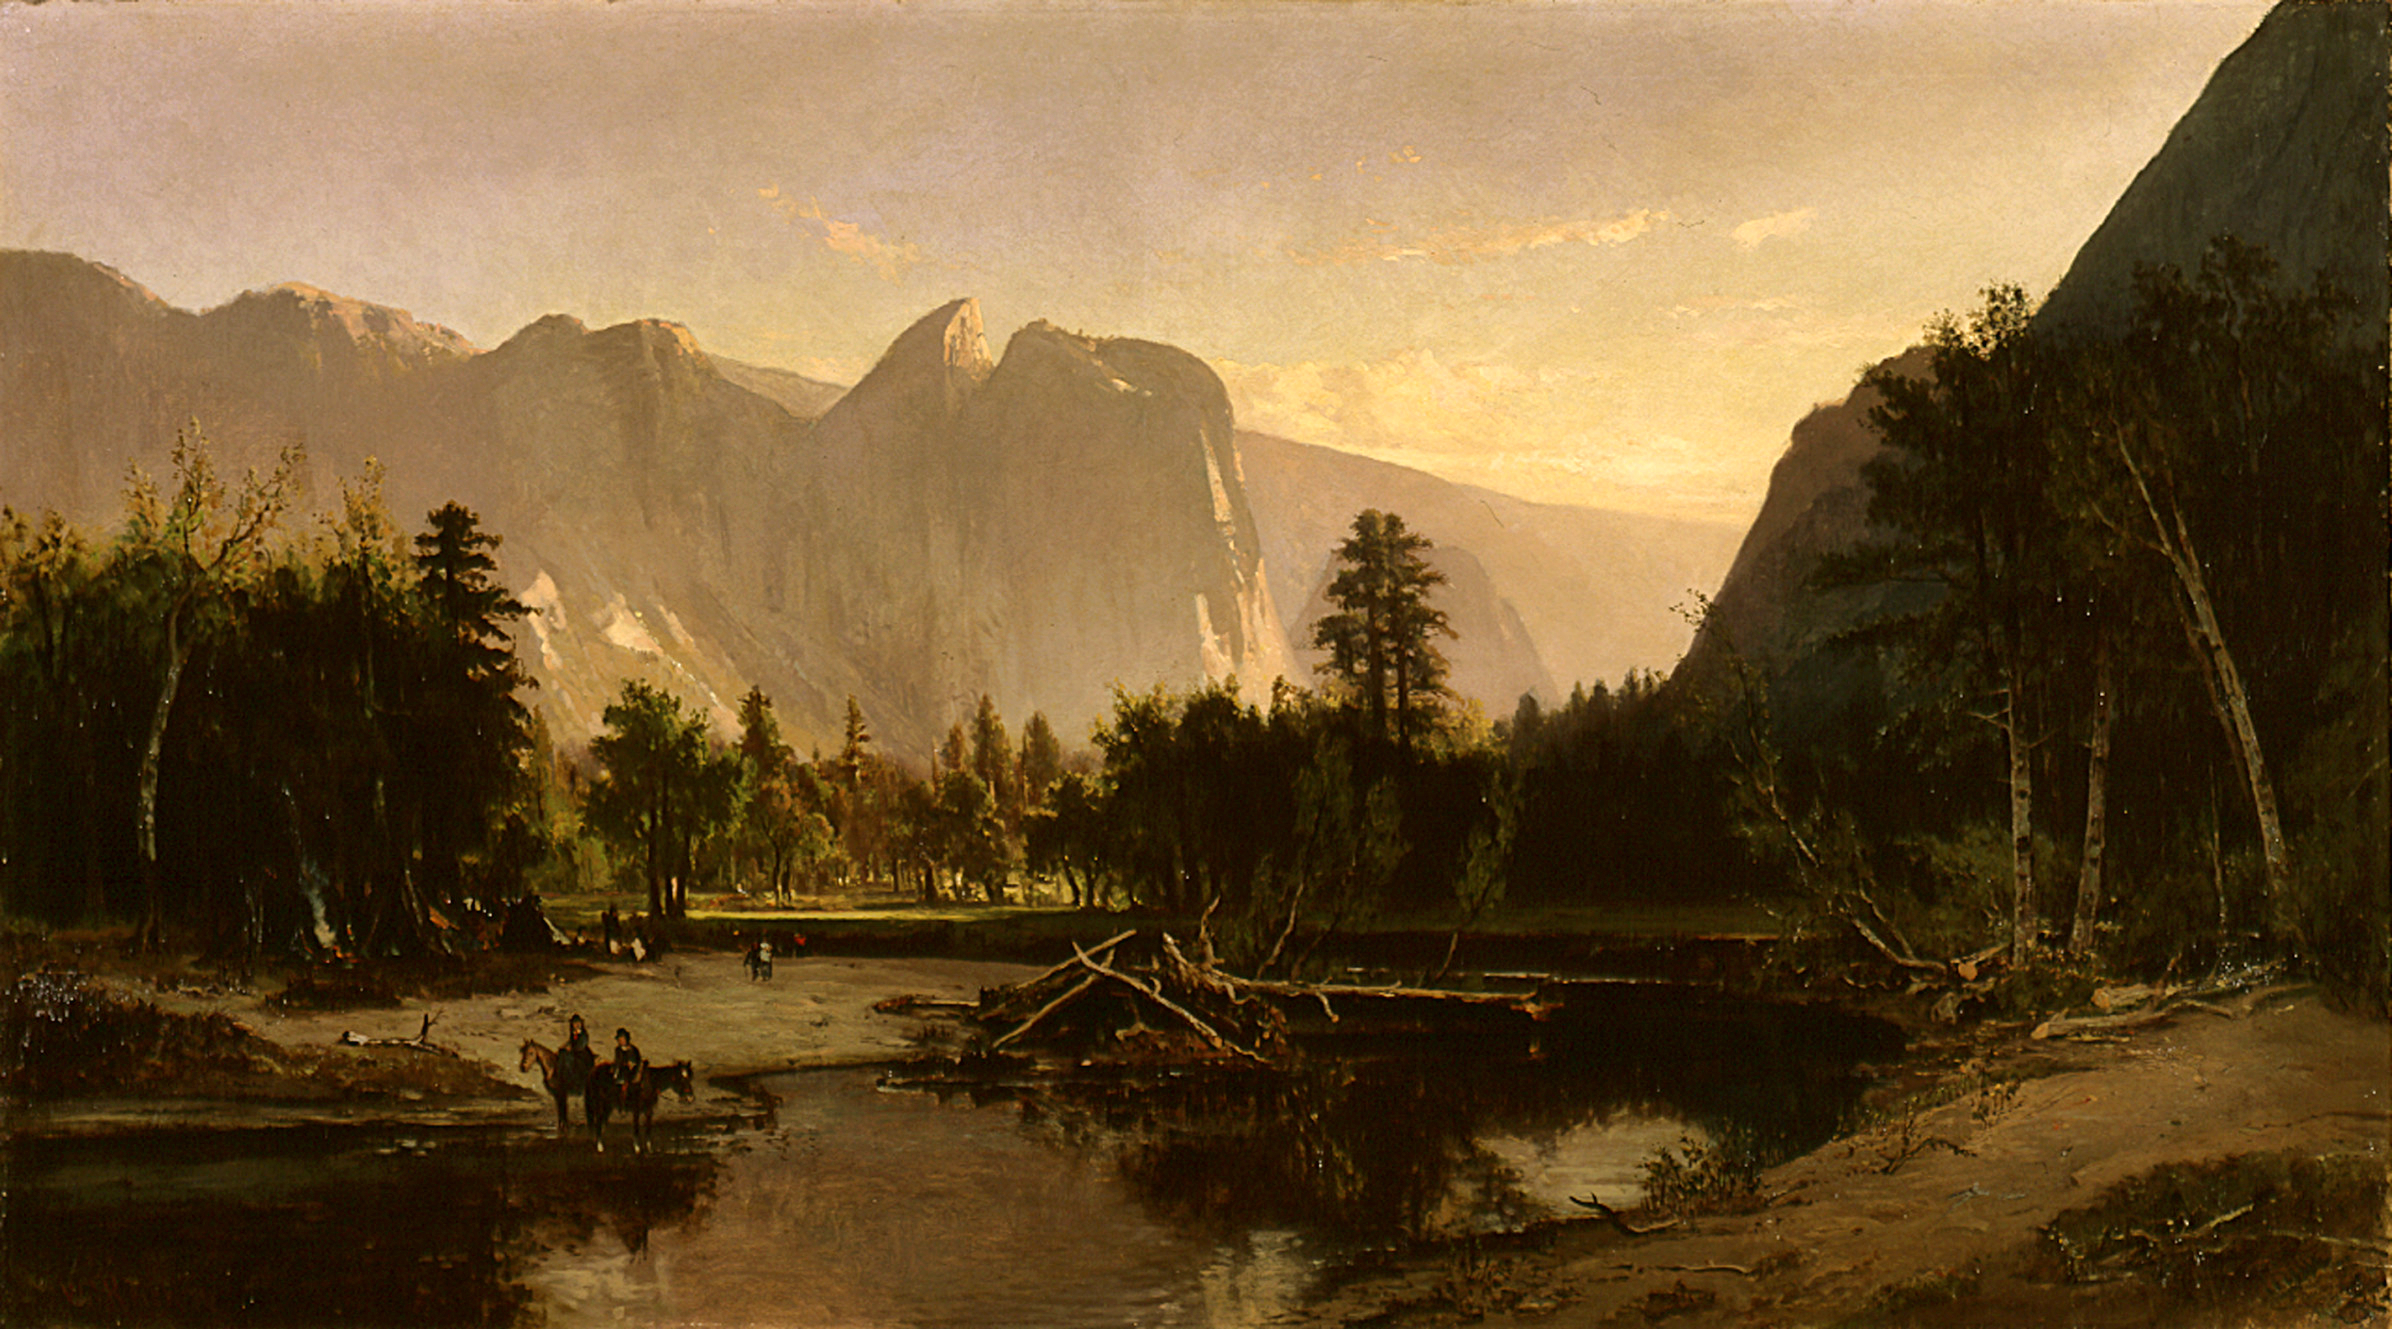 William Keith – Yosemite Valley,1875